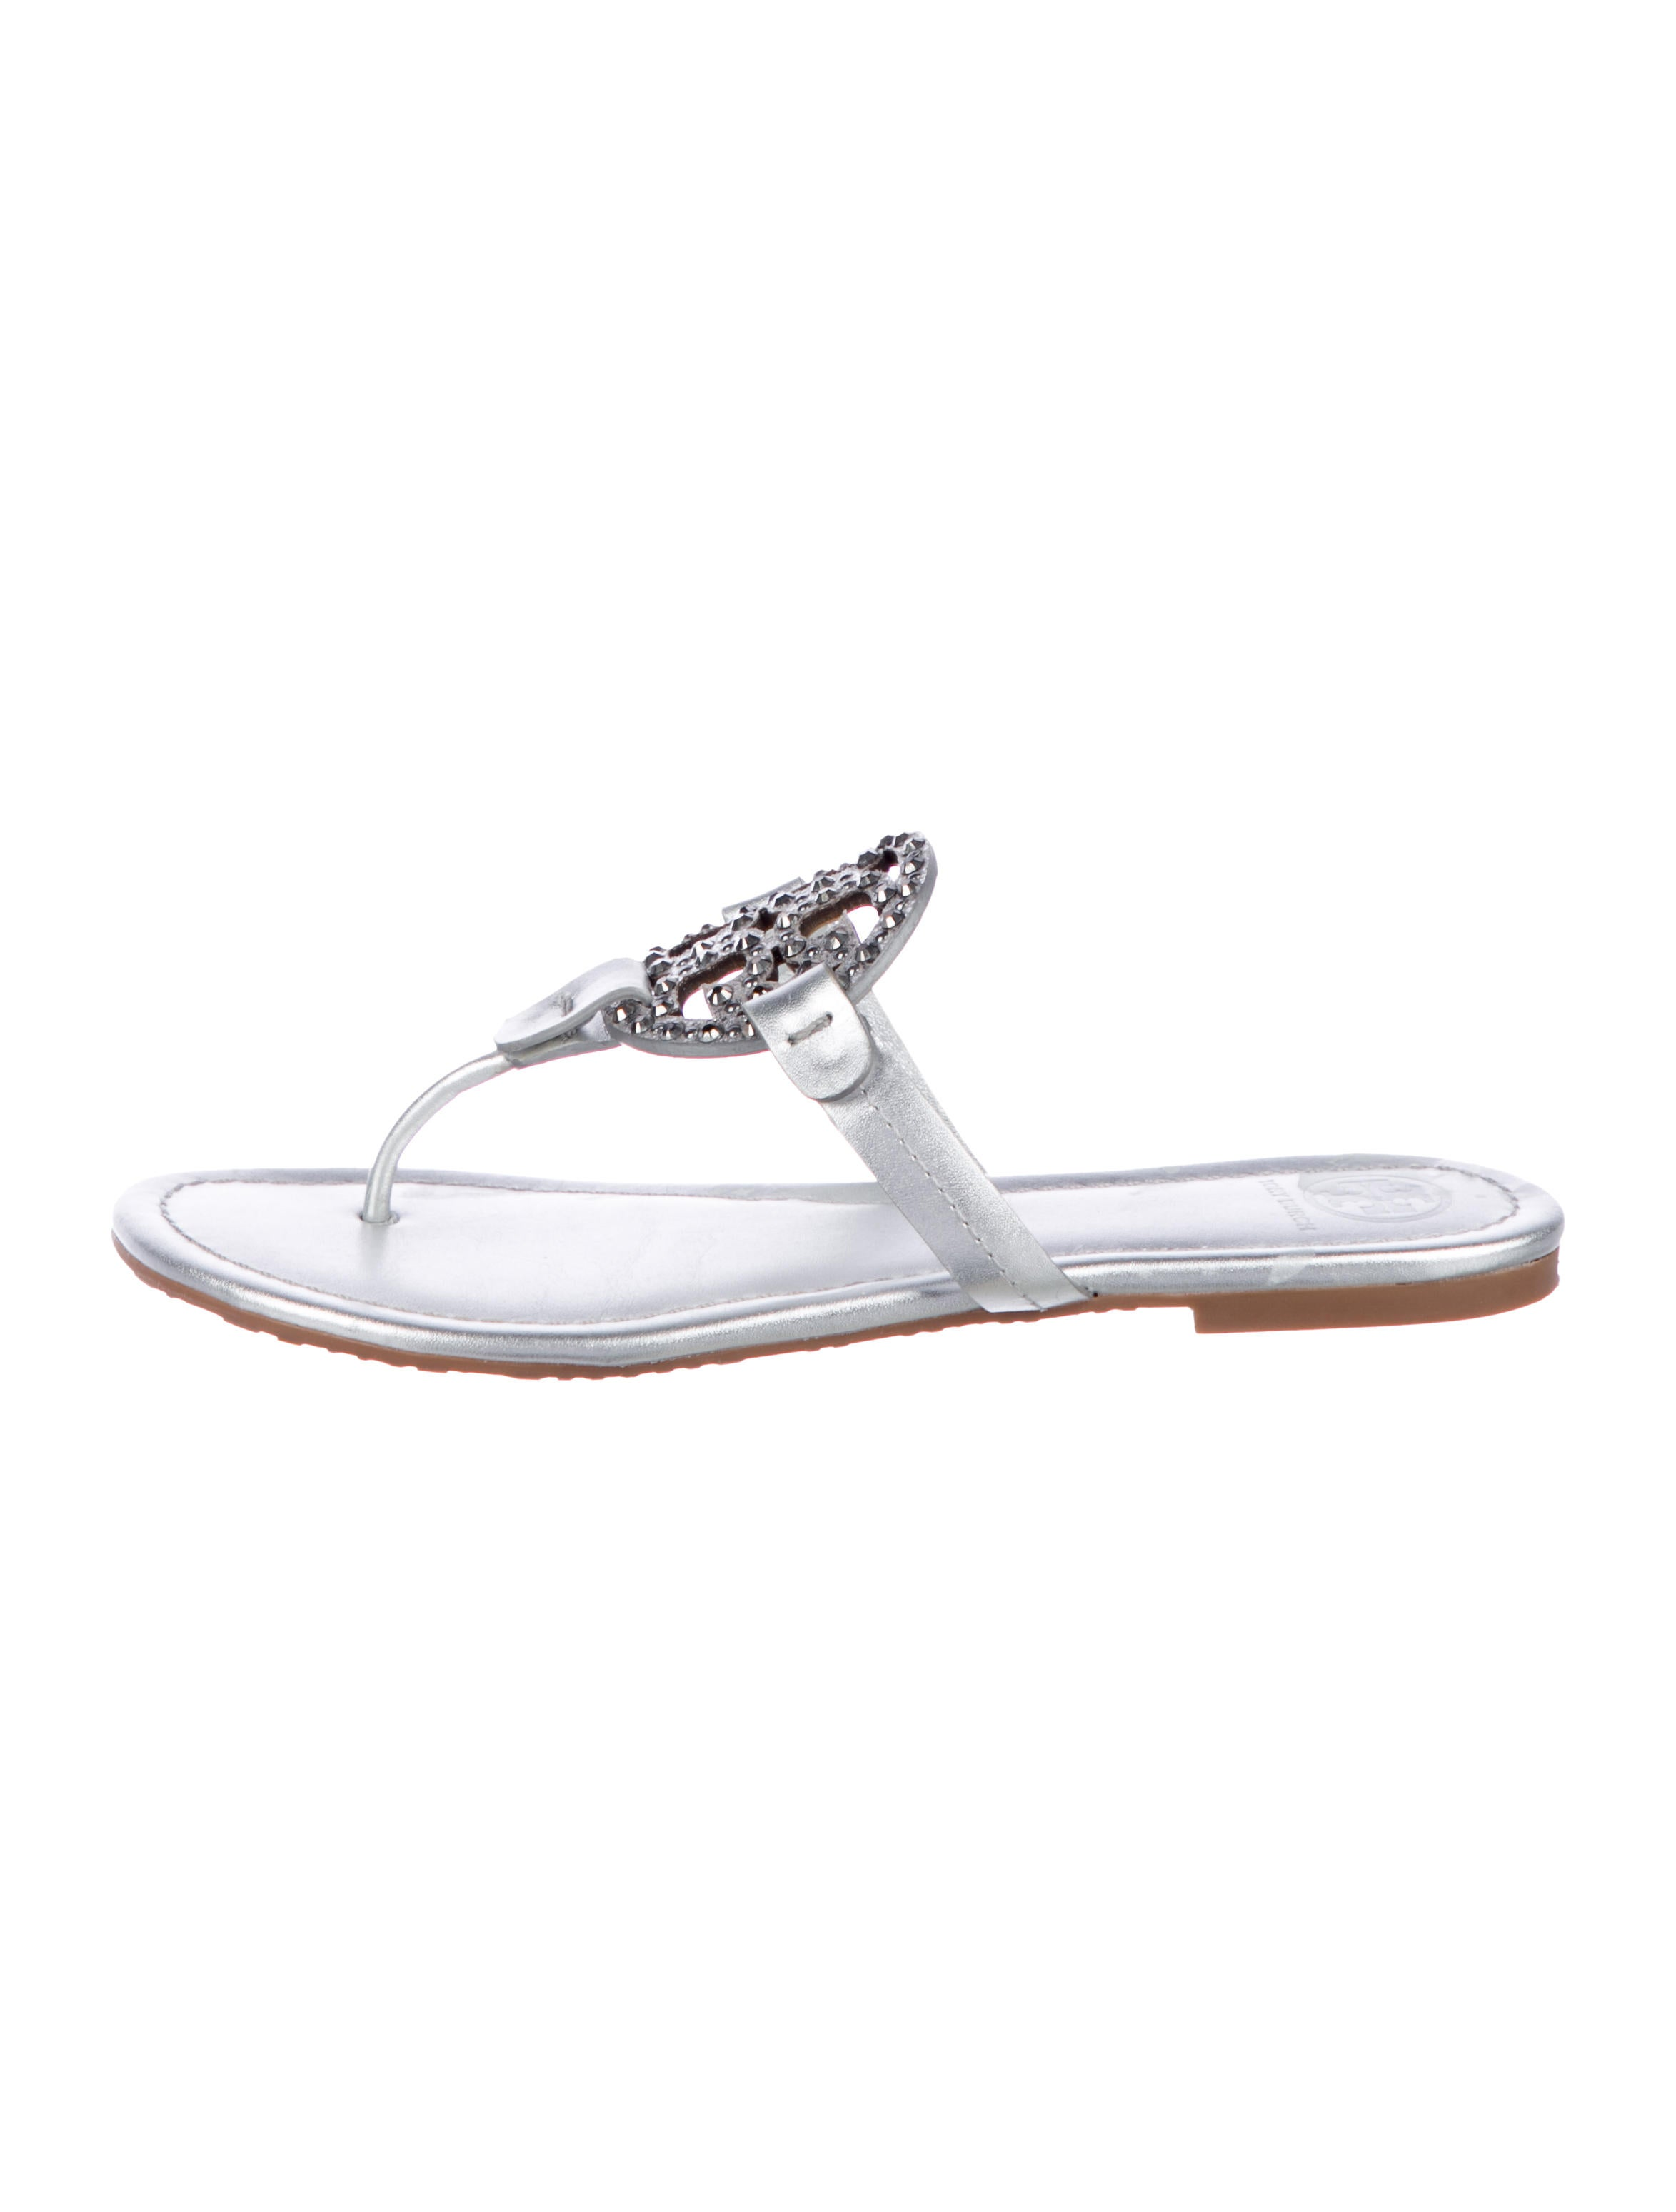 c4c77d915d2258 Tory Burch Miller Embellished Sandals - Shoes - WTO171662